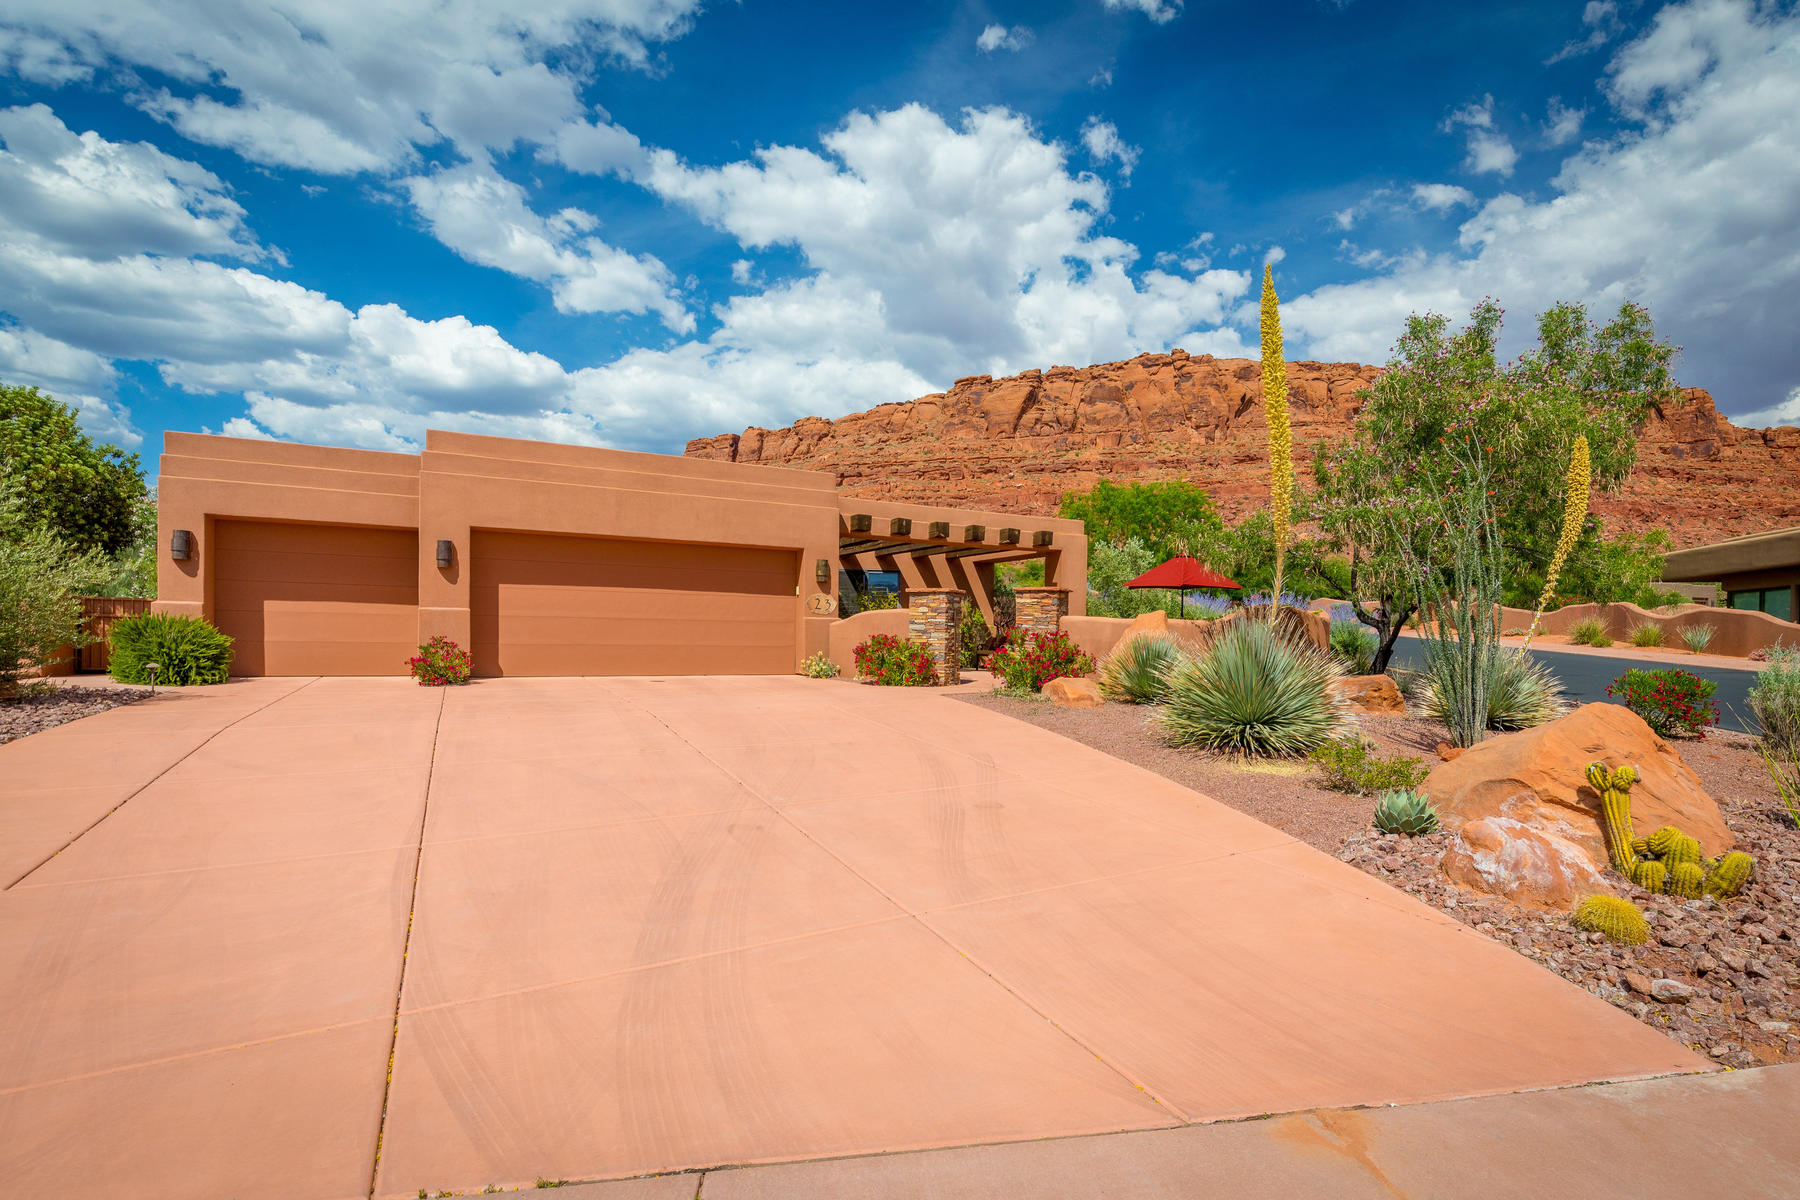 Single Family Homes for Sale at Entrada Living 2336 W Entrada Trail #23, St. George, Utah 84770 United States